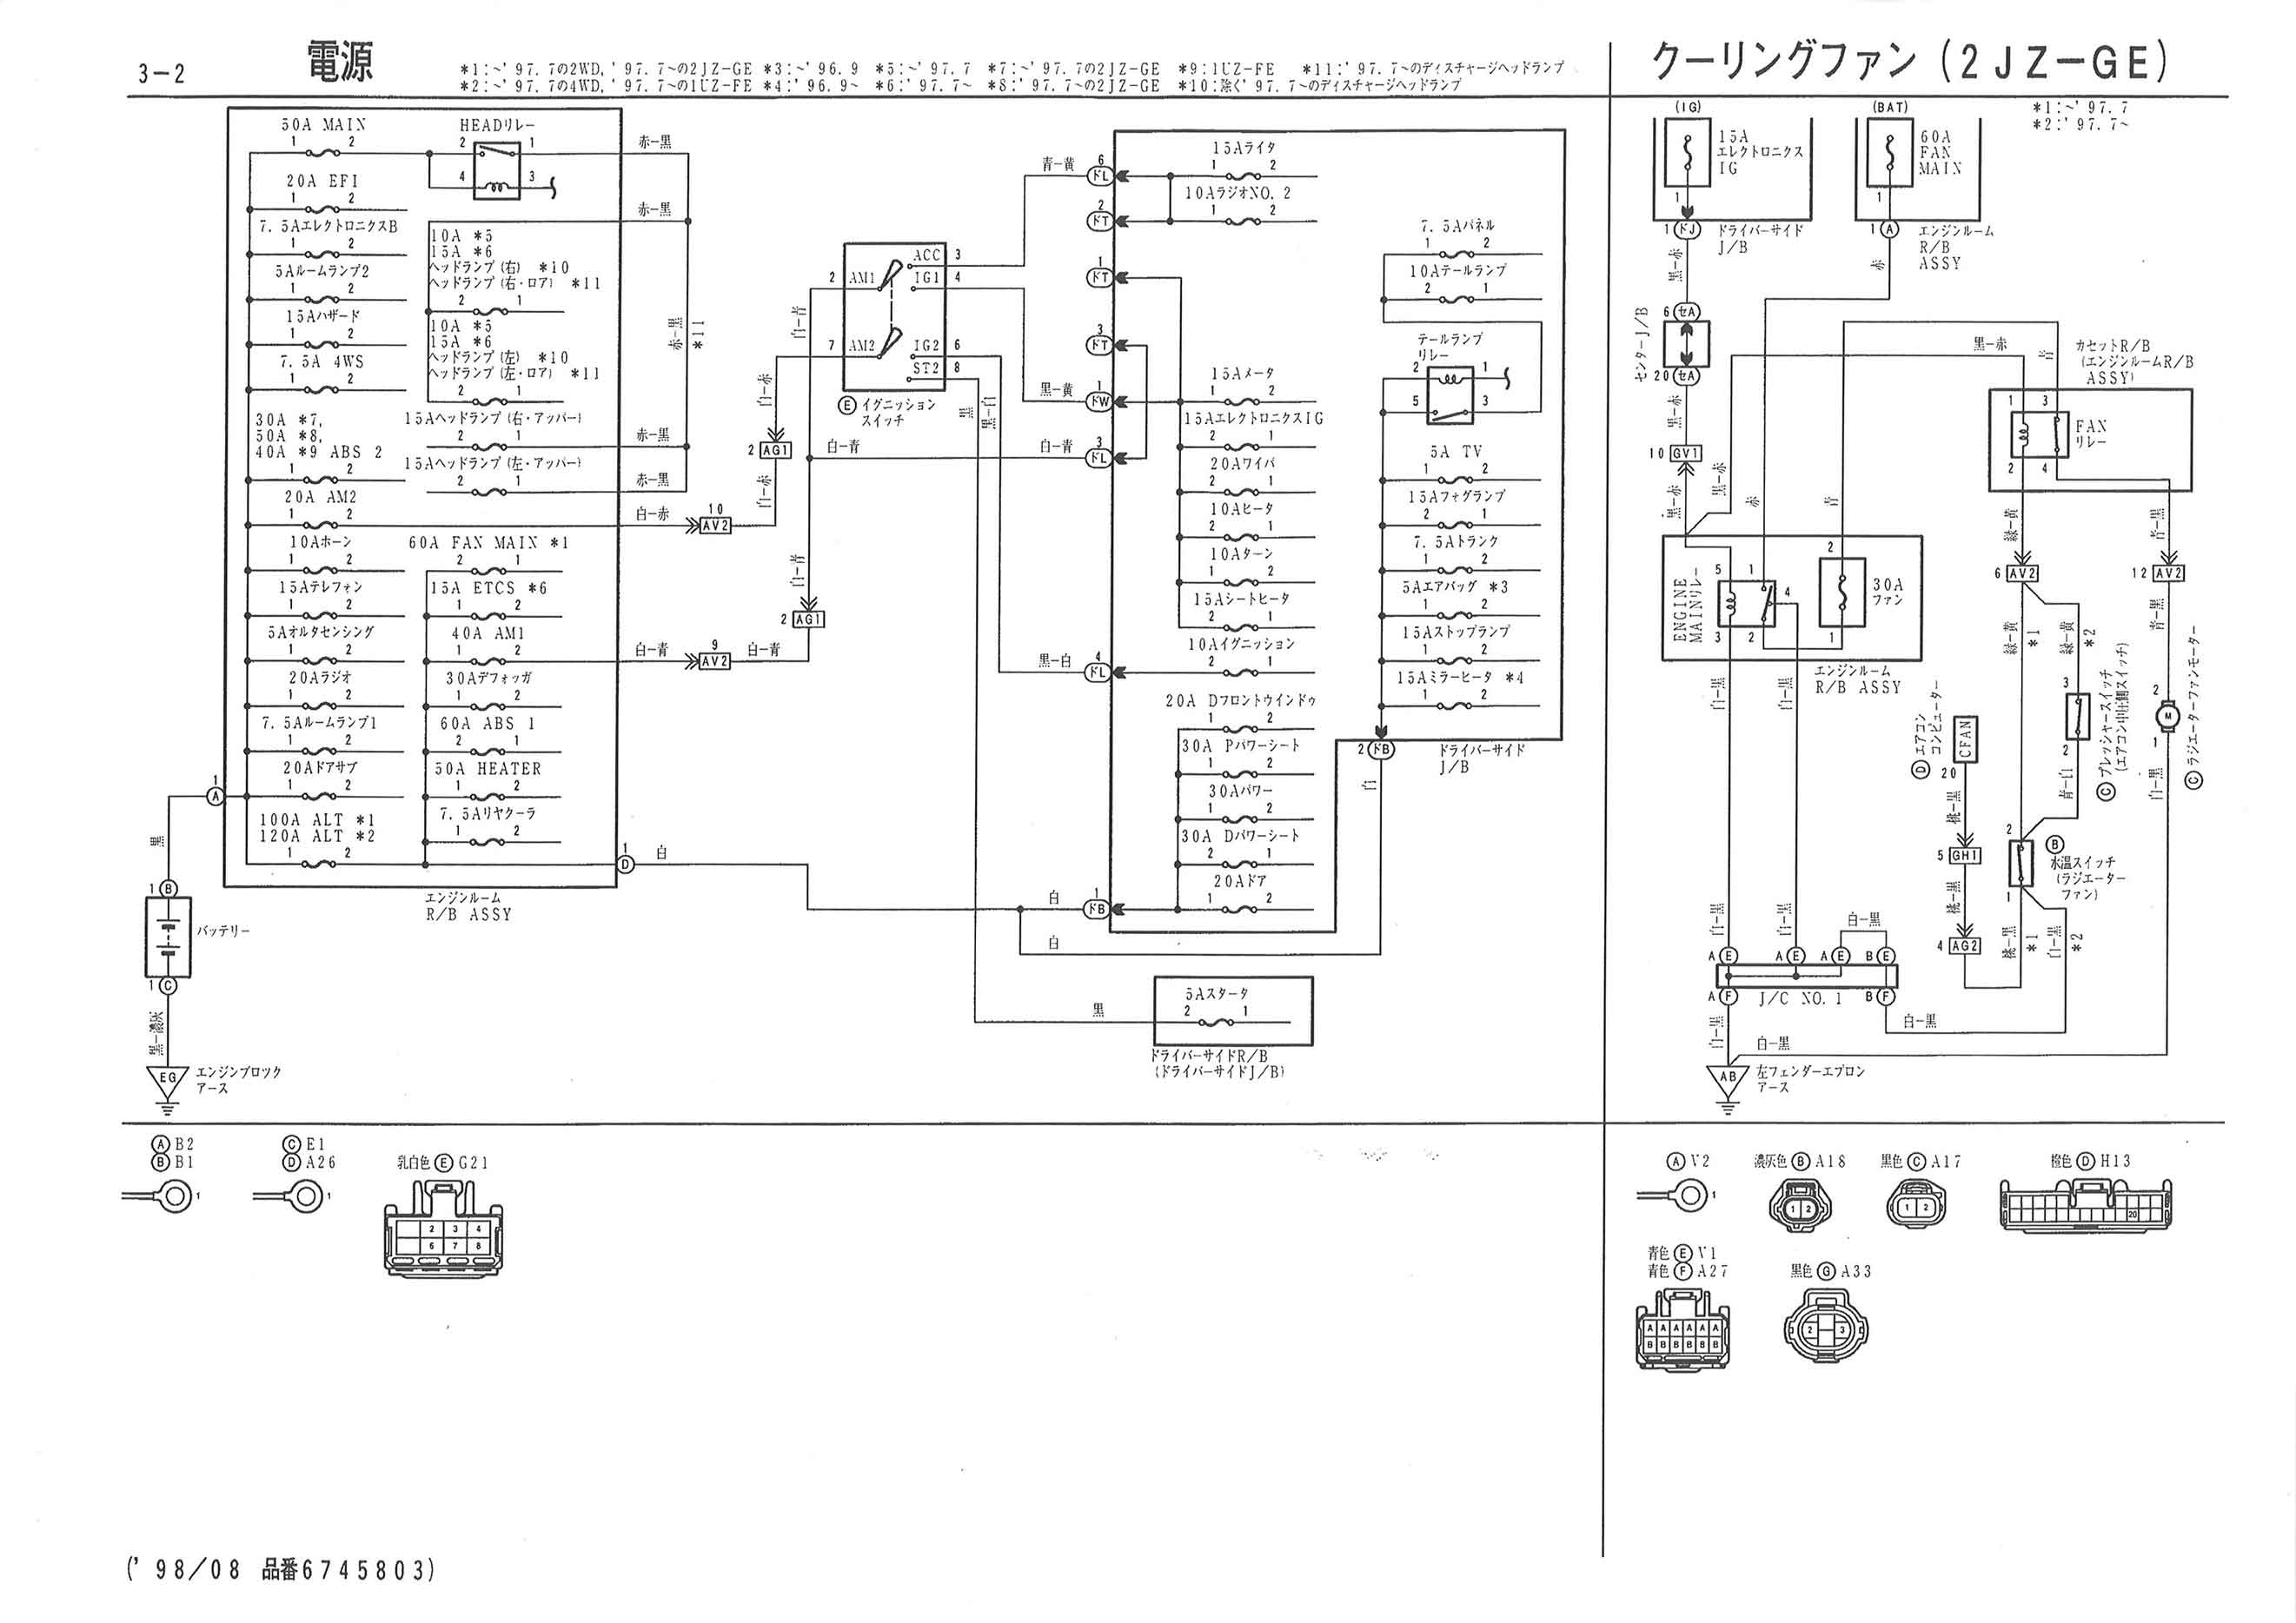 1992 Lexus Sc400 Fuse Box Diagram. Lexus. Auto Fuse Box